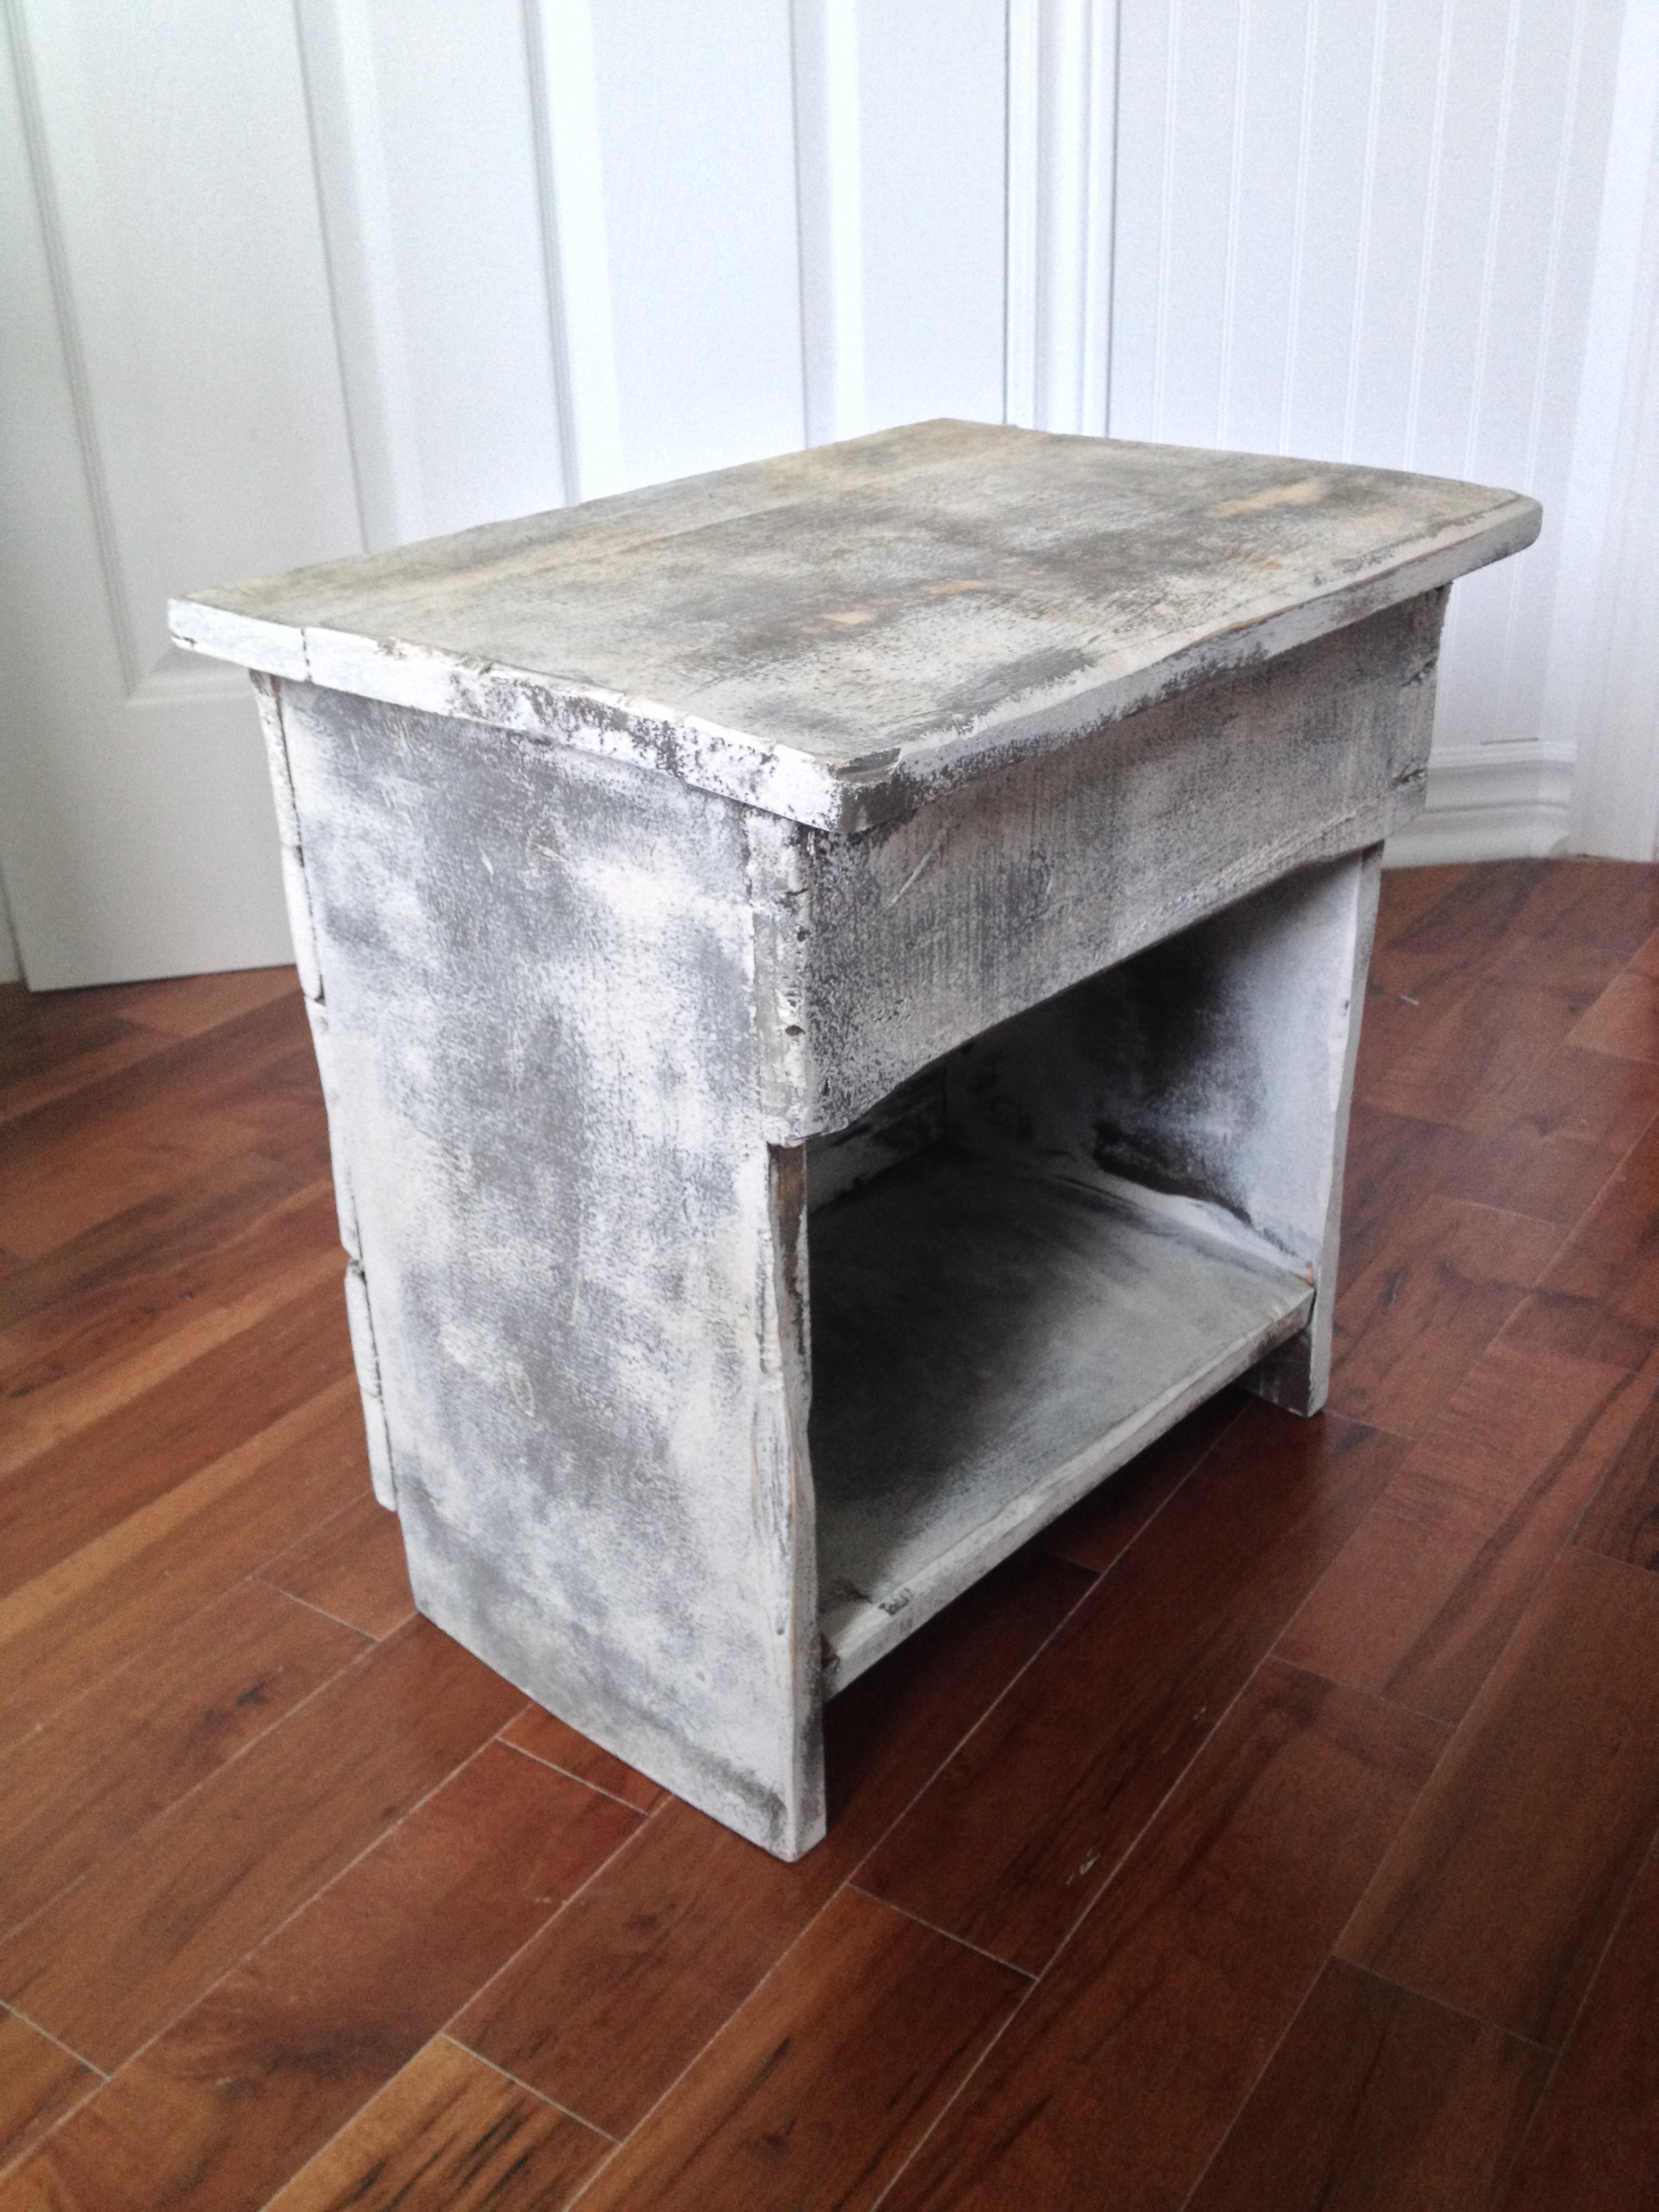 Table de chevet meuble shabby chic - Table de nuit rustique ...